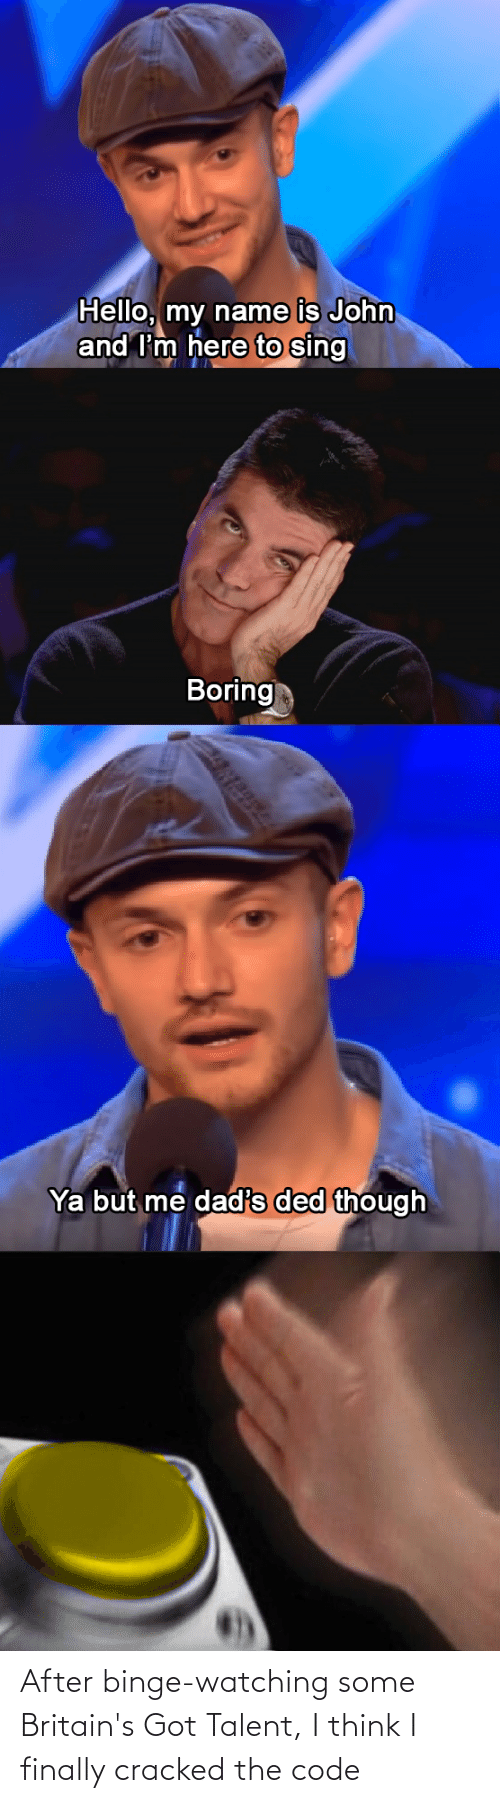 Cracked: After binge-watching some Britain's Got Talent, I think I finally cracked the code